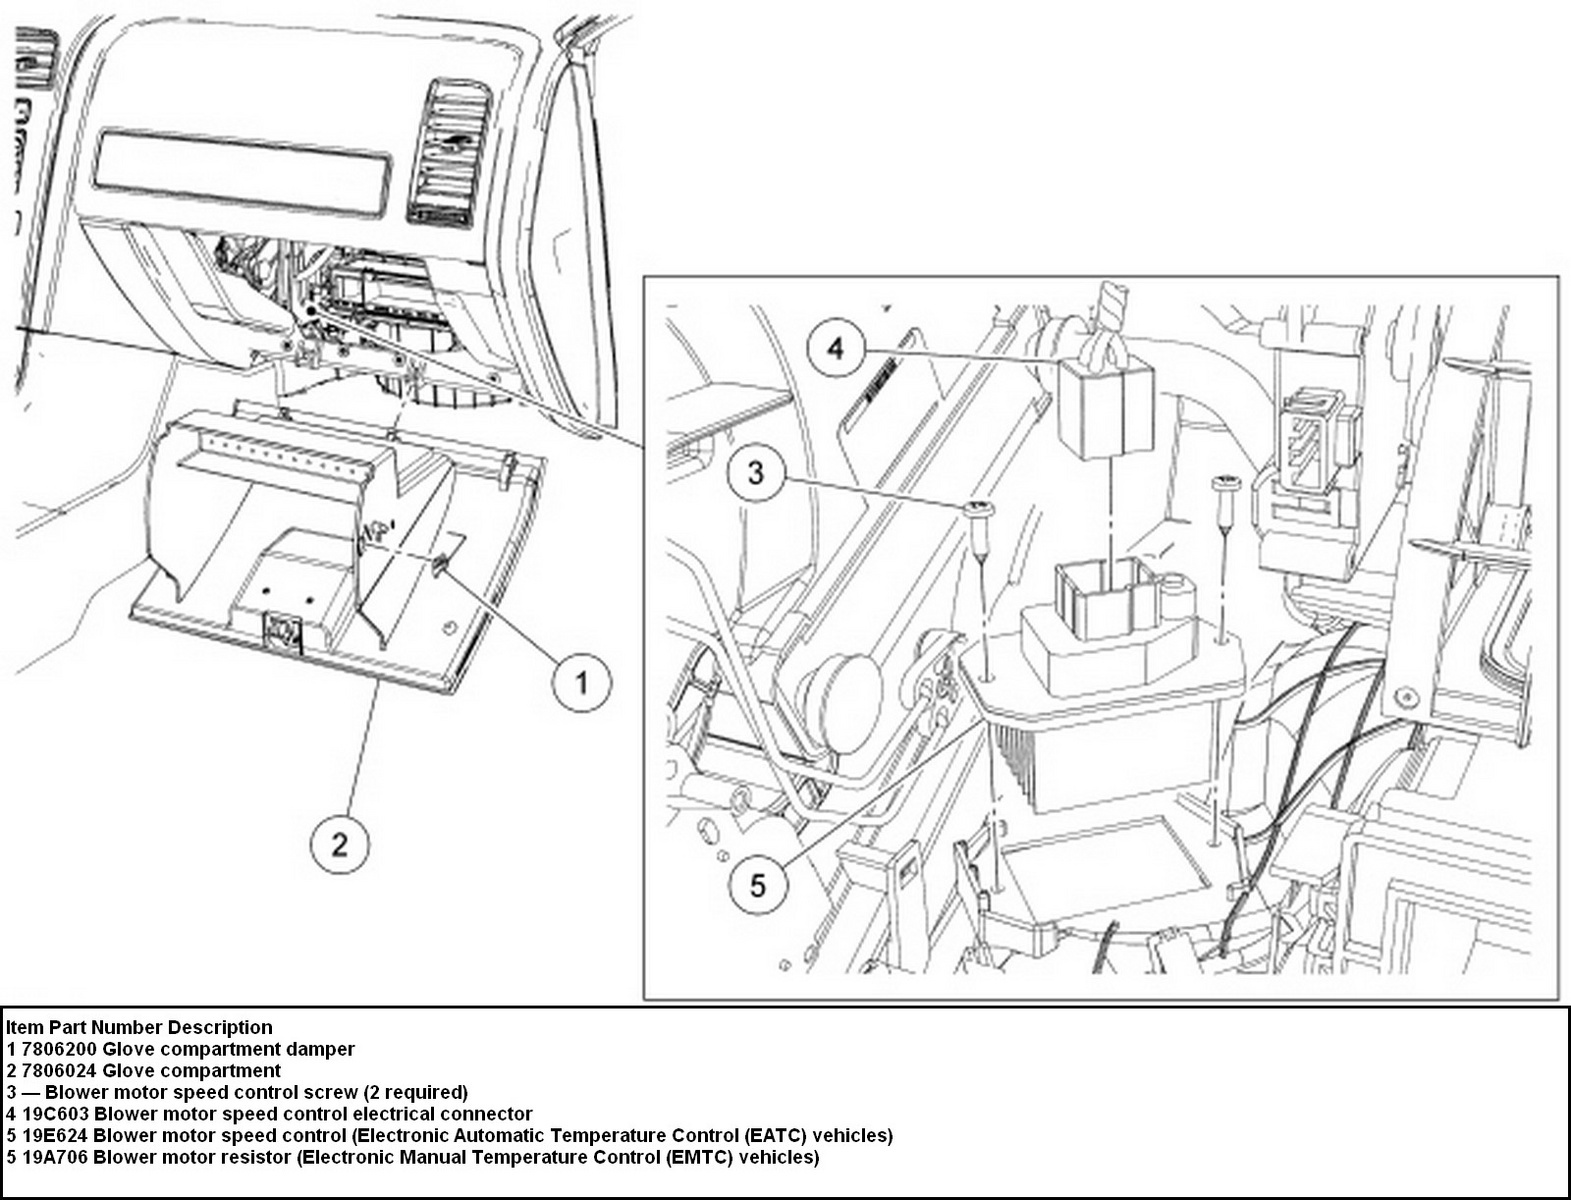 hight resolution of 2011 ford escape fuel filter schematic diagrampdf 5951 ford escape fuel filter location manual 2019